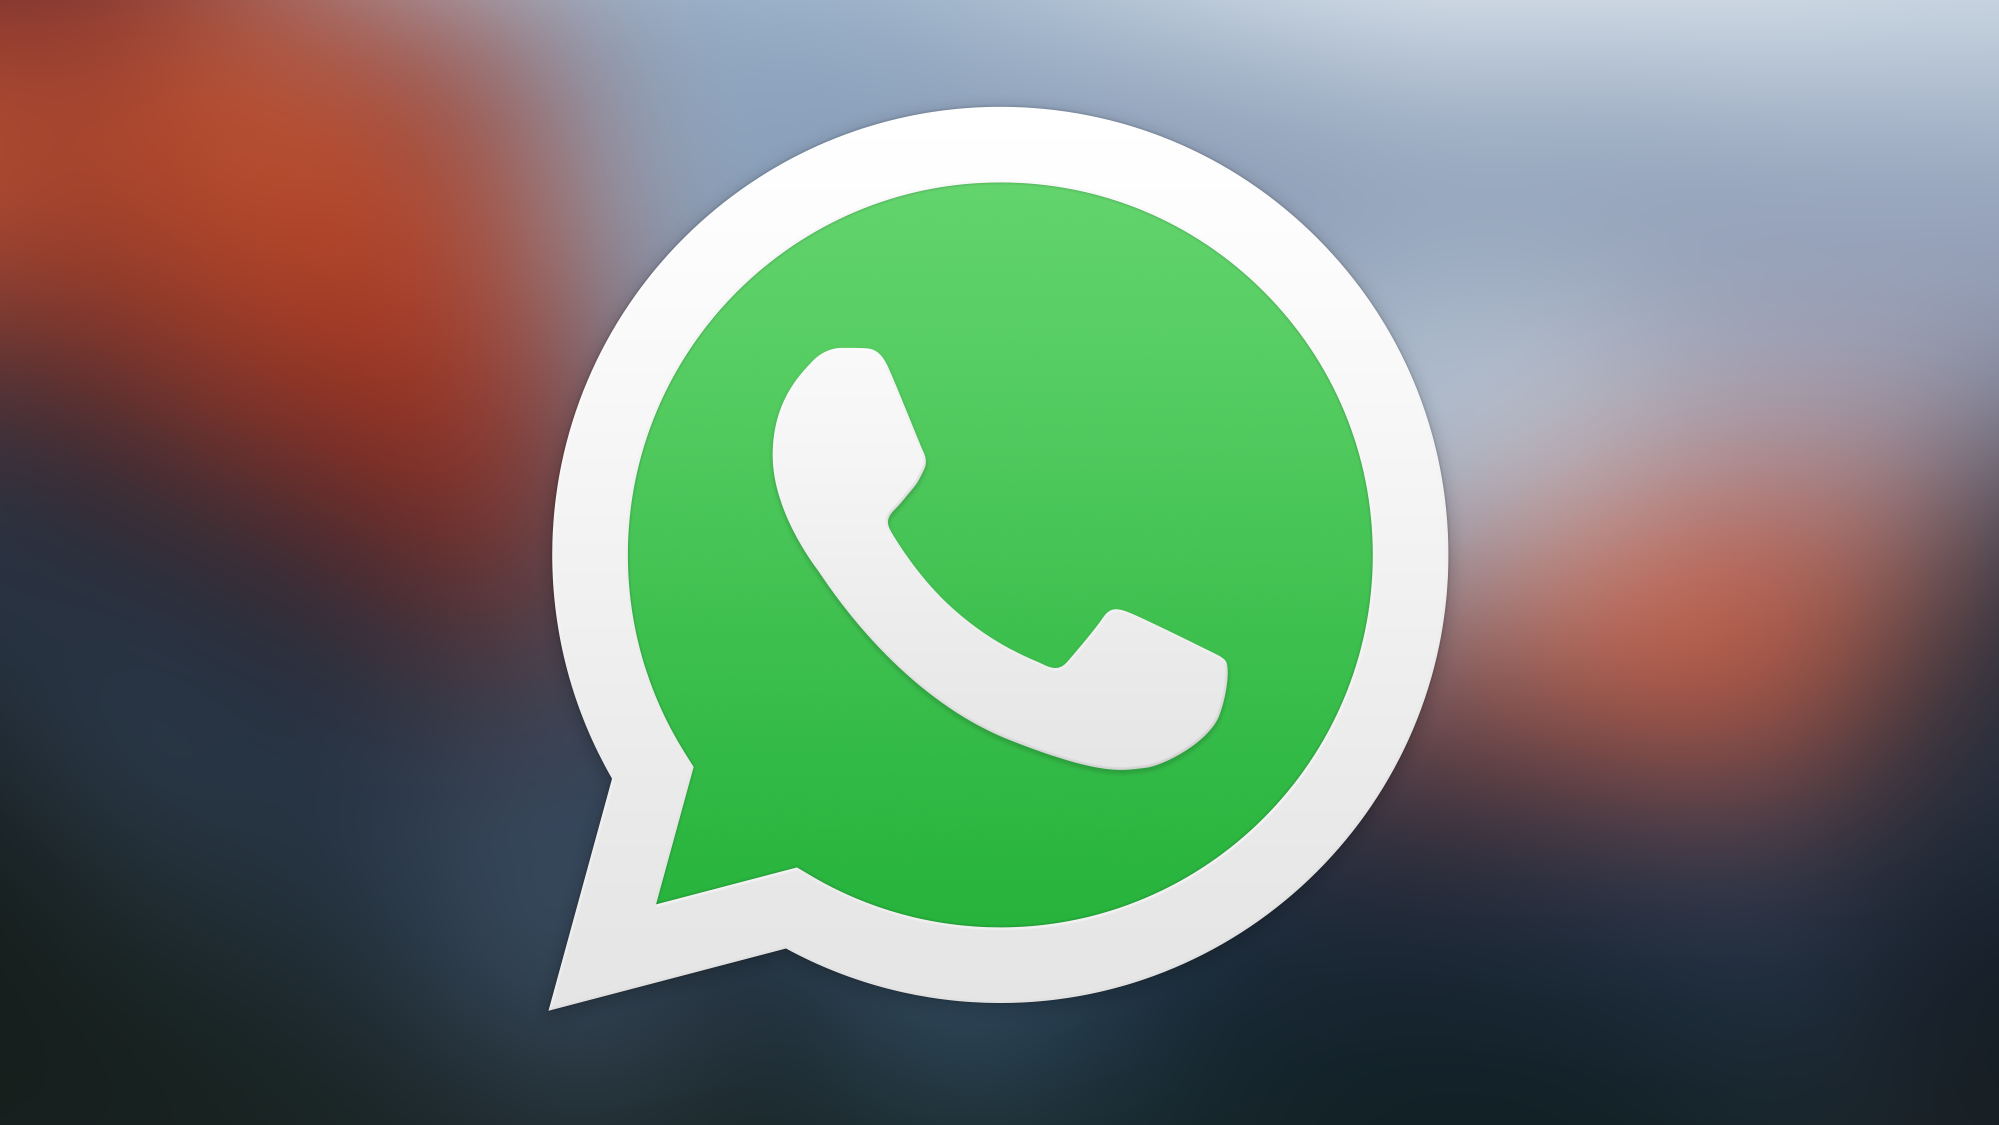 whatsapp-desktop-16x9